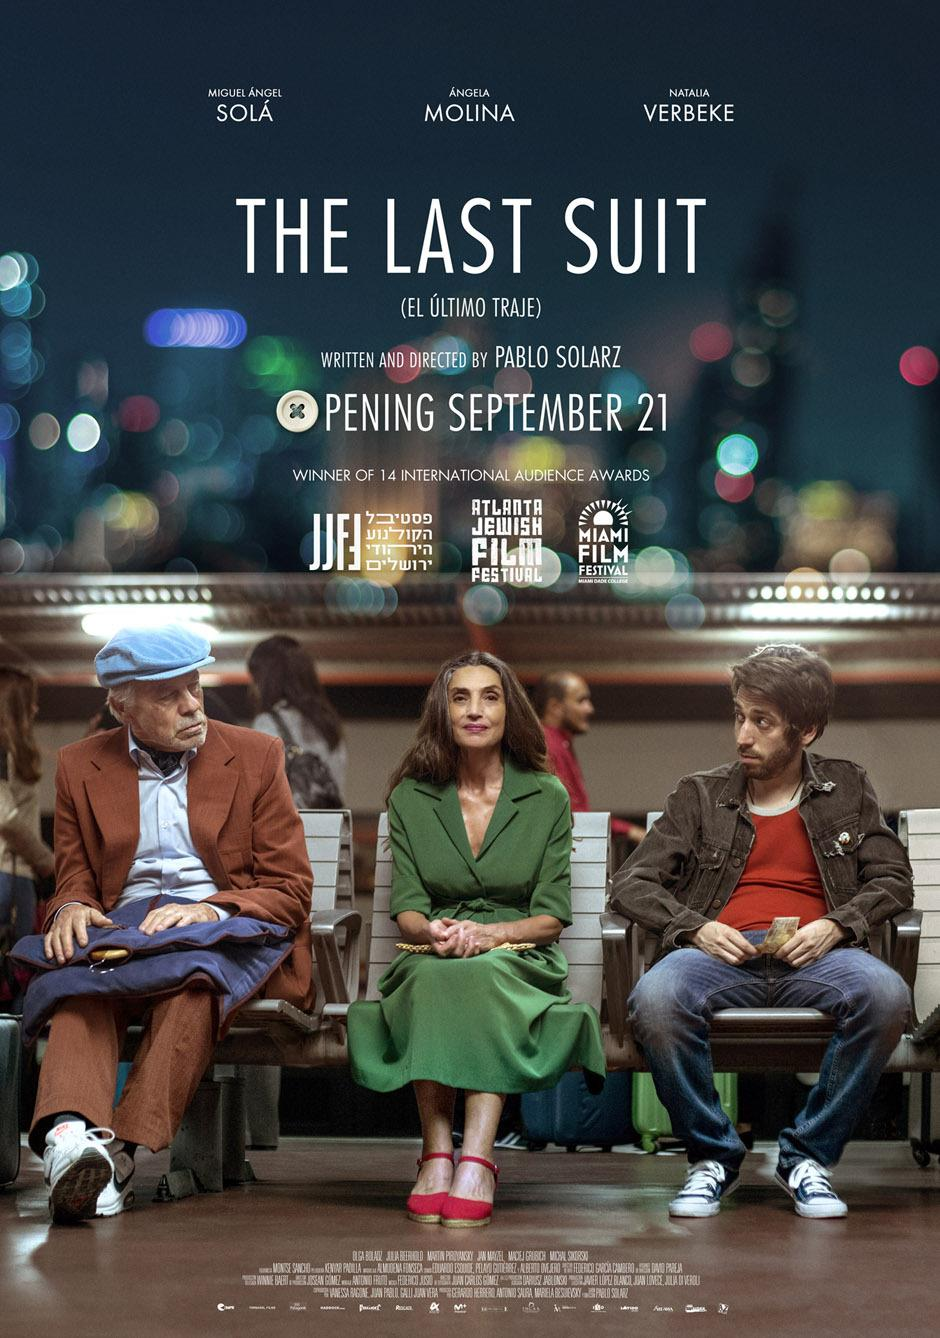 THE LAST SUIT Release Poster